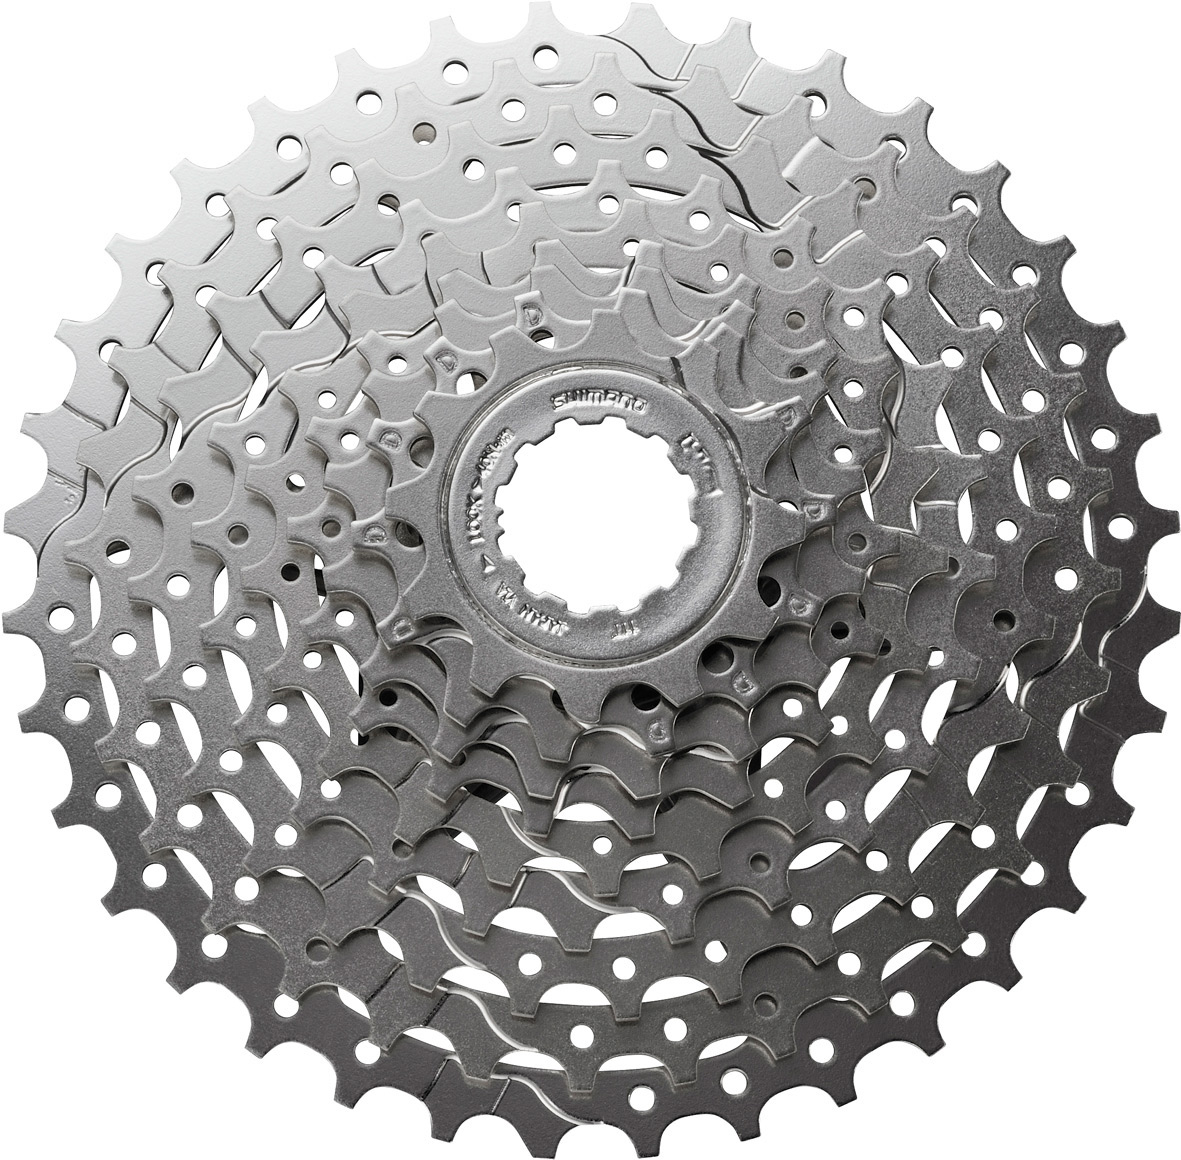 CS-HG400 Alivio 9-speed cassette 11-34